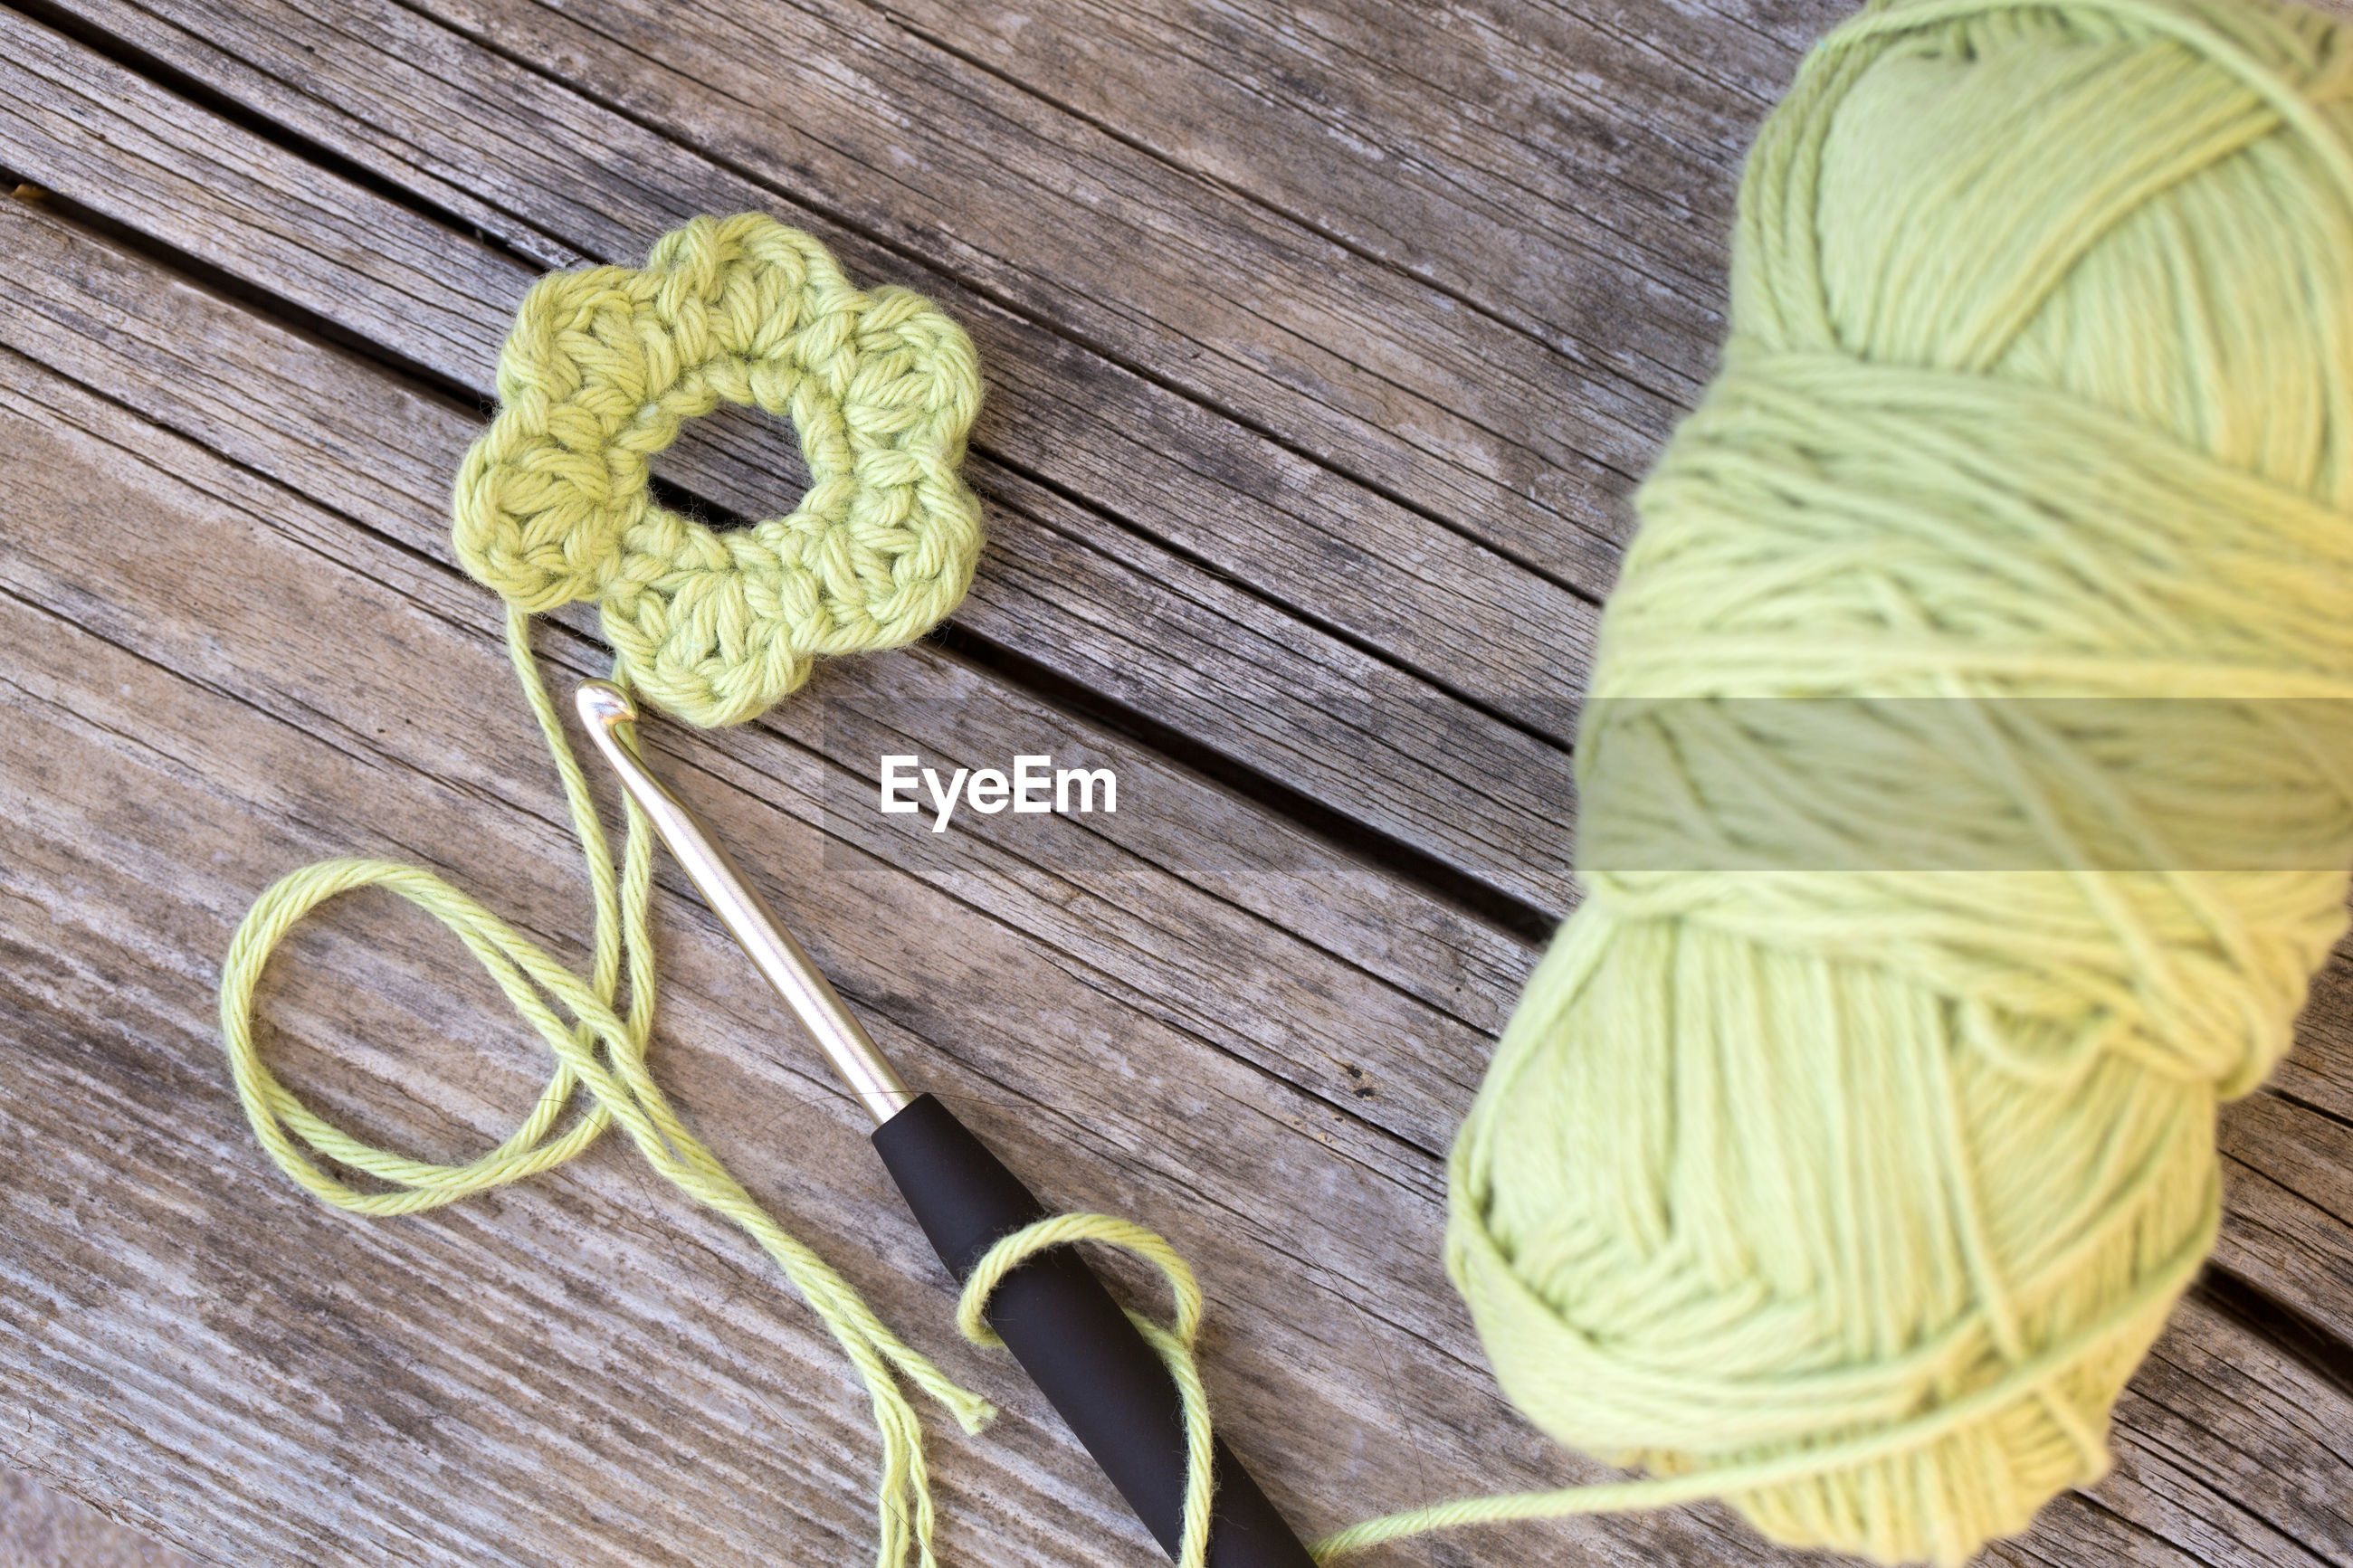 High angle view of wool with flower on table